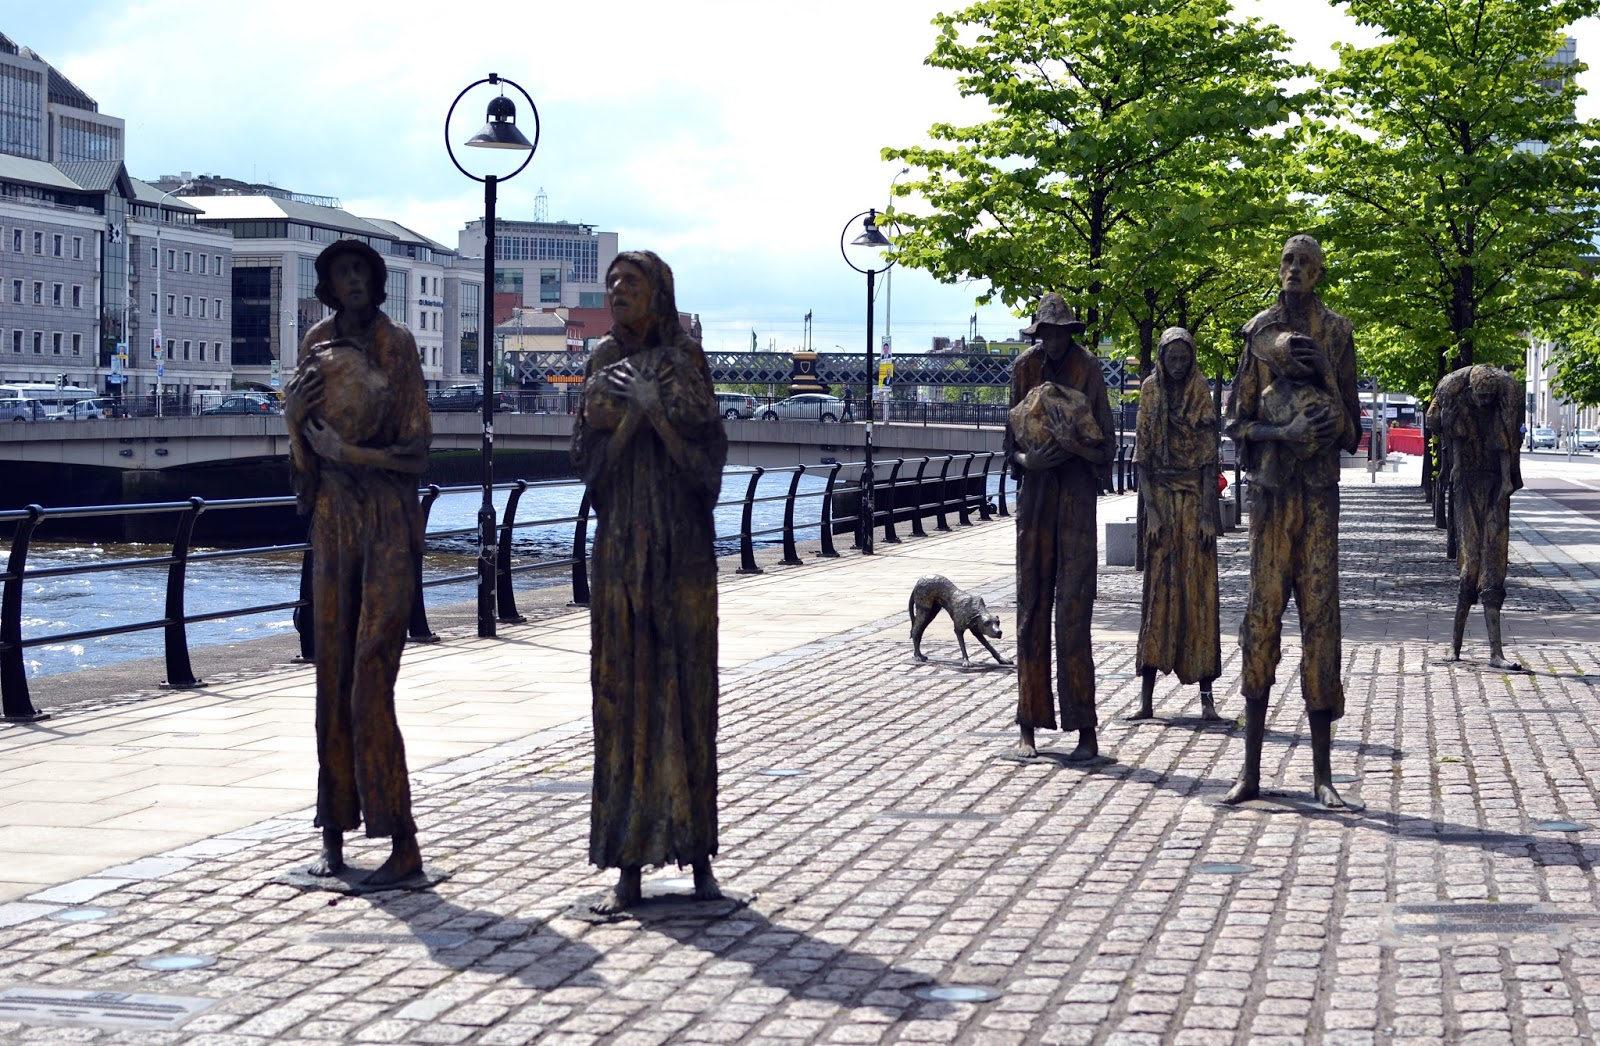 famine memorial, jeanie johnston, long ship, irish immigrants, Dublin, Ireland, Europe, things to do in dublin, guide to dublin, travel blog, travelling, the custom house, liffey, ireland photography, dublin photography, eire, Guinness, temple bar, irish pub, traditional, cobbled street, beautiful, docks, dublin spire, O'Connell street, post office, LUAS, tram, Dublin Castle, half penny bridge, ha'penny bridge, liffey bridge, wellington bridge, book of kells, Trinity college, sculpture, library, long room, st stephens green,